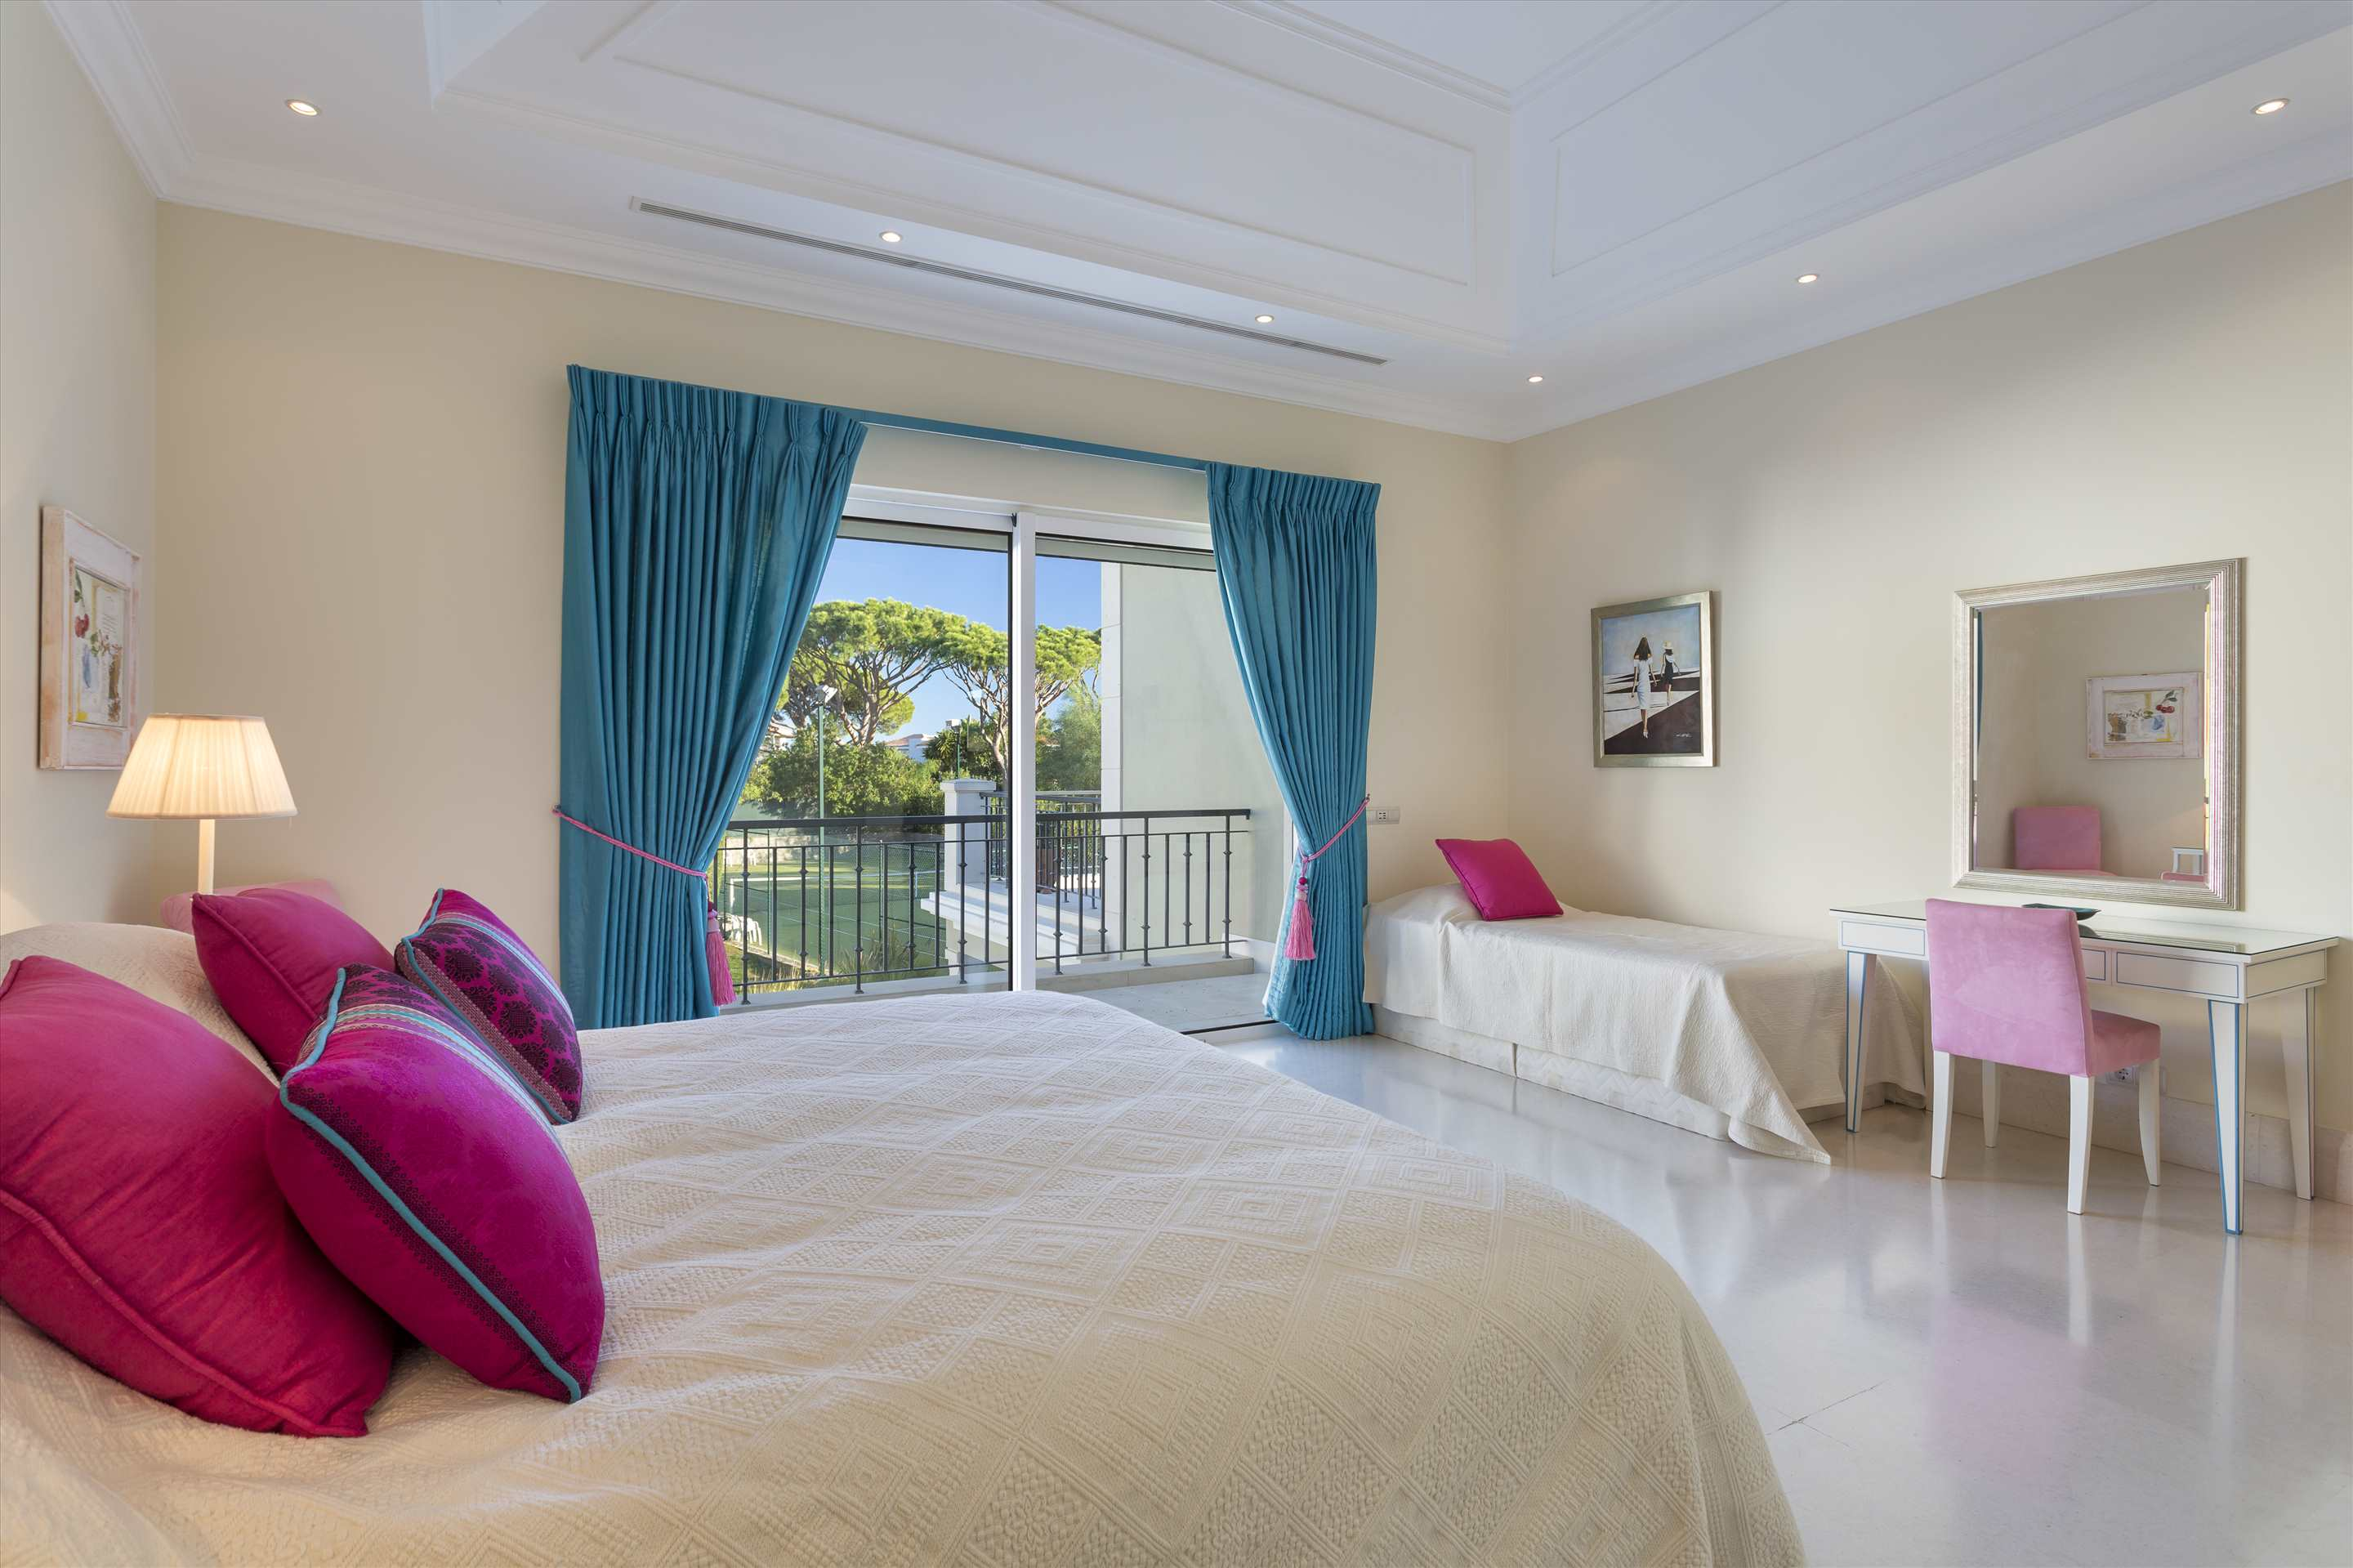 Villa Belissima, 5 bedroom villa in Vale do Lobo, Algarve Photo #27